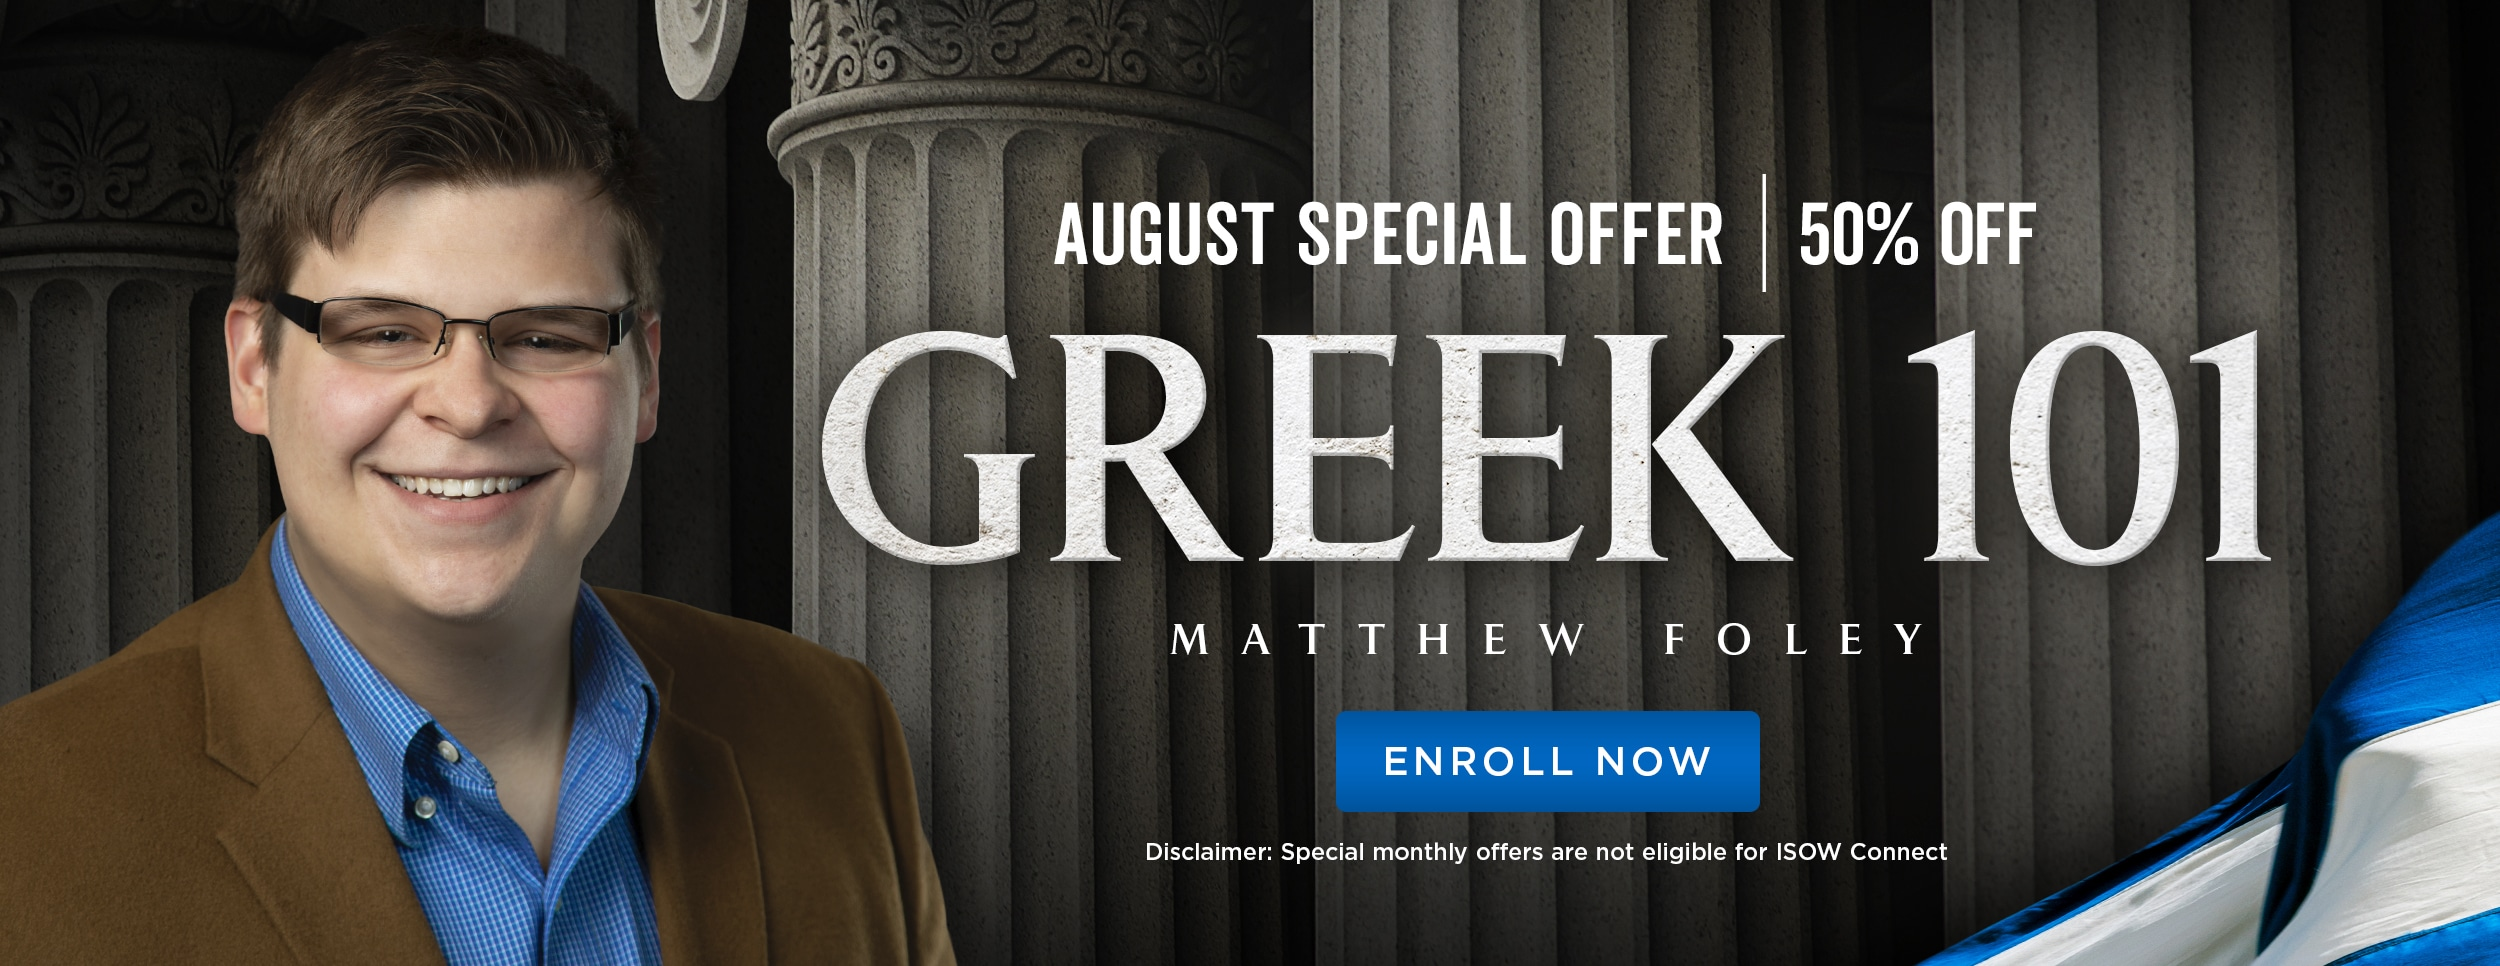 August Special Offer - Greek 101 50% Off